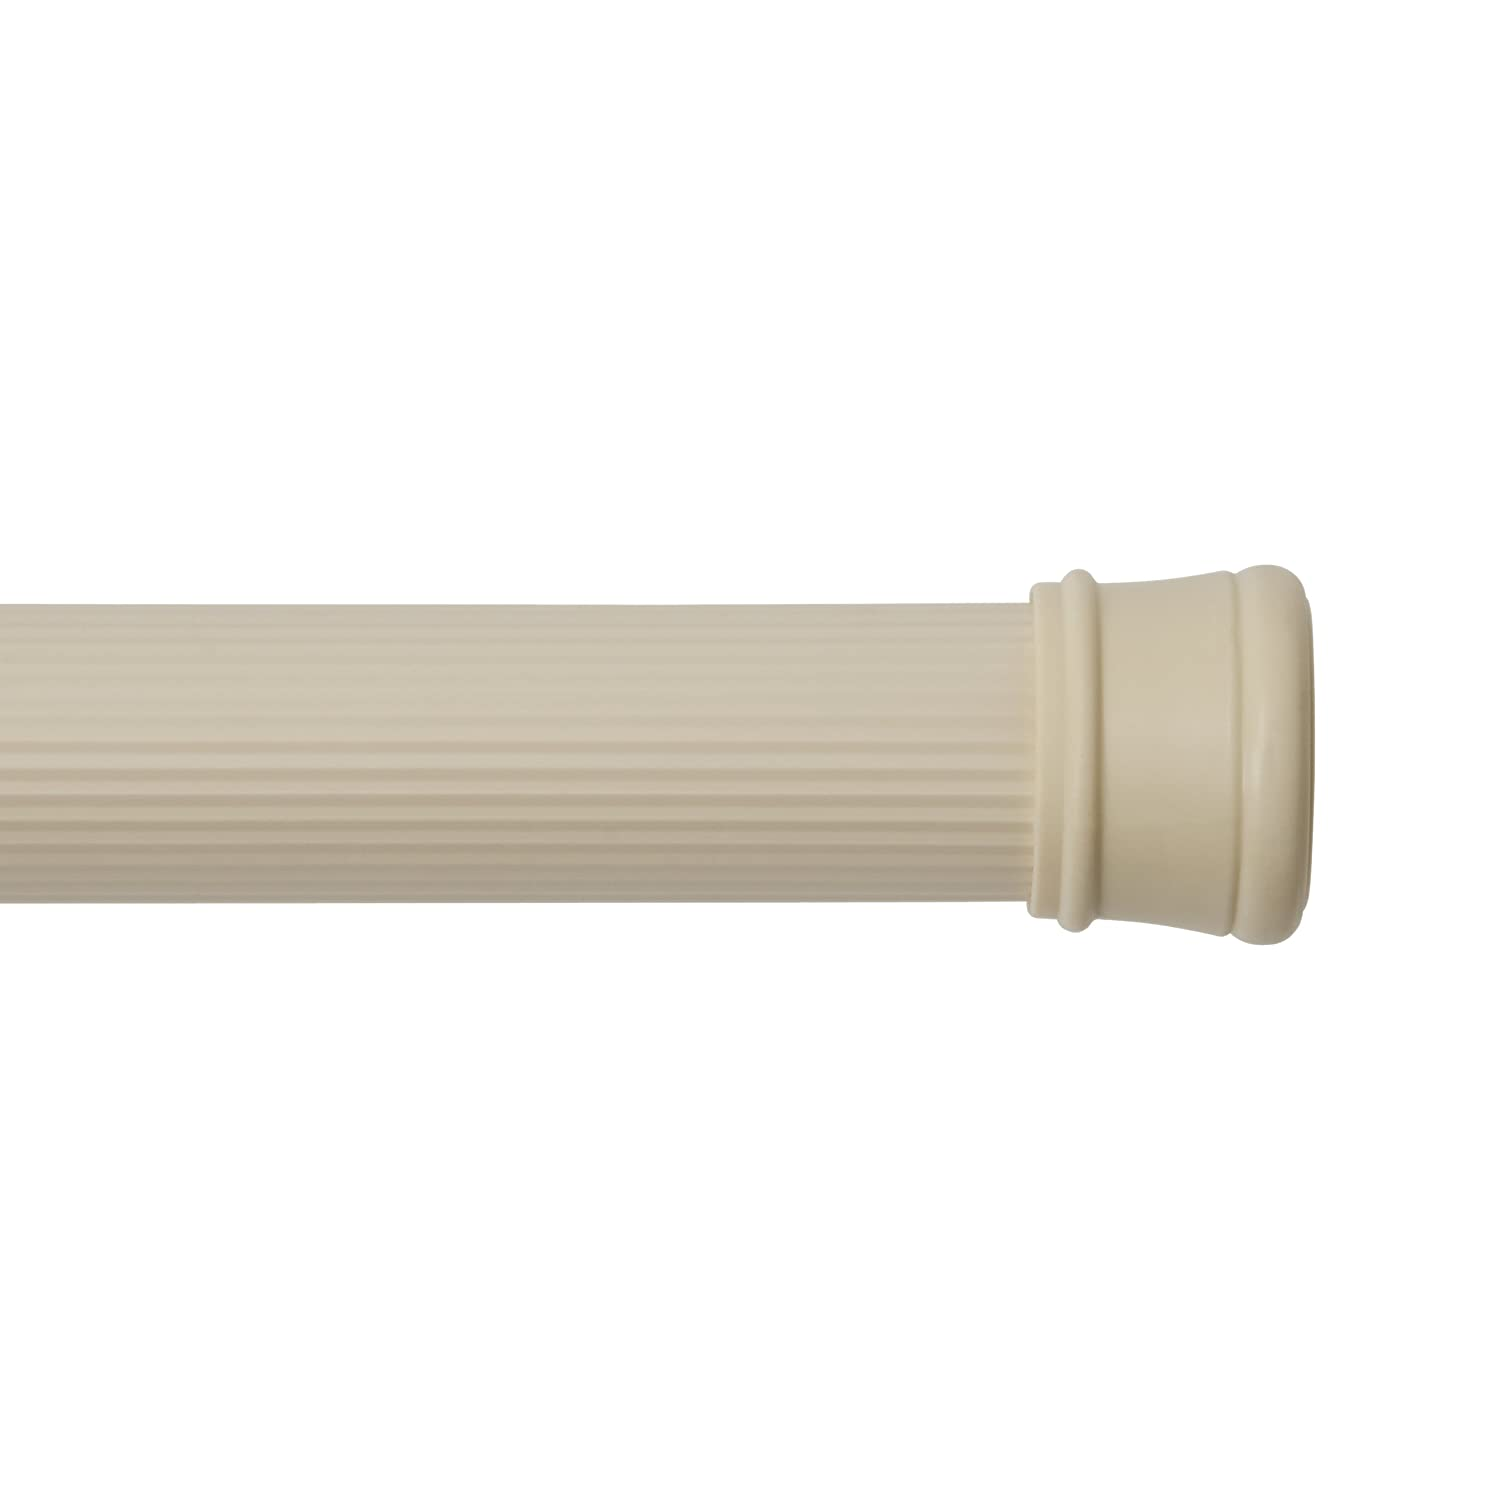 Kenney No Tools Spring Tension Utility Rod 24 38 Alabaster Amazonin Home Kitchen